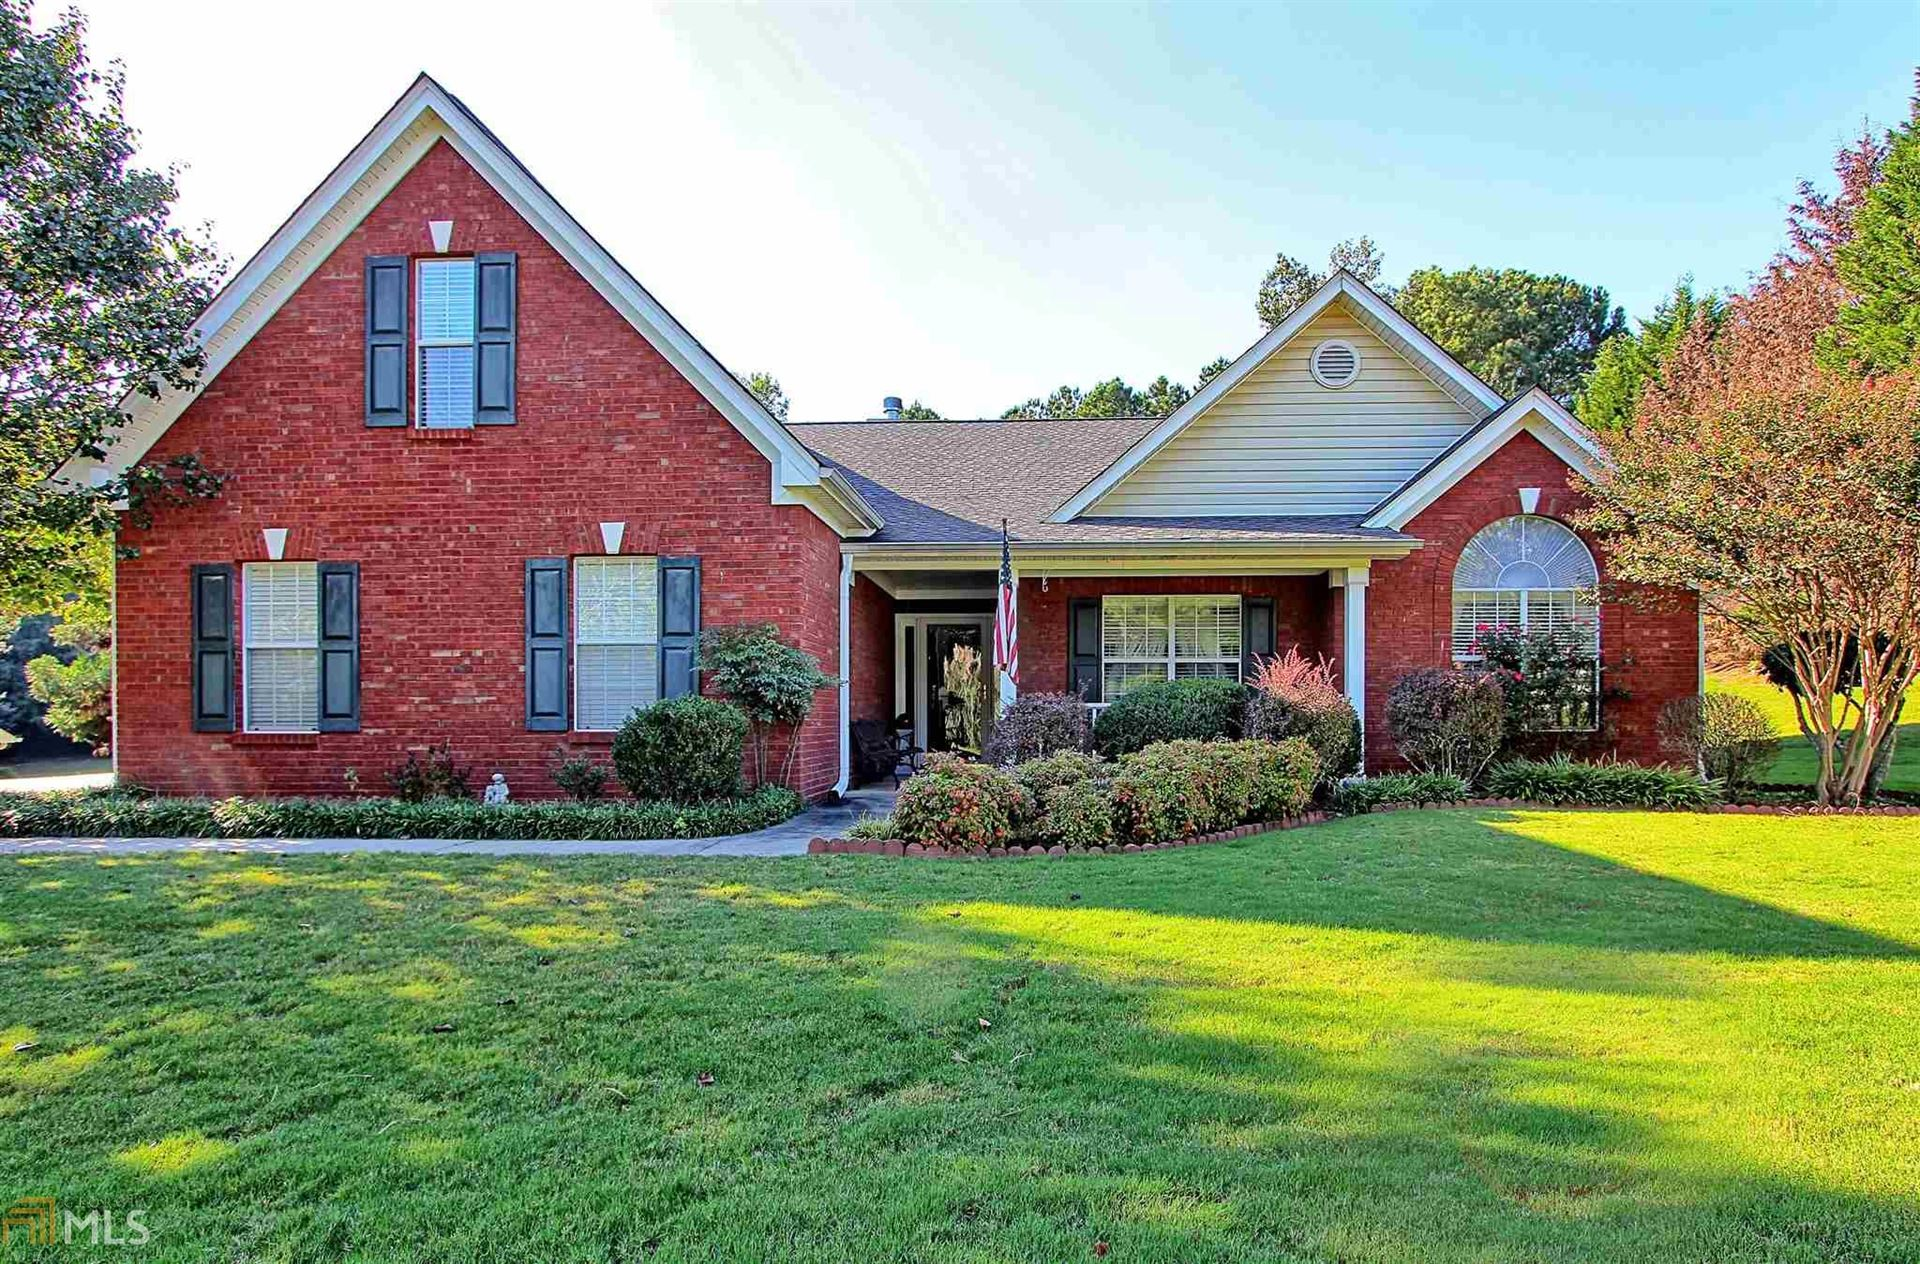 1100 The By Way, McDonough, GA 30252 - #: 8875253